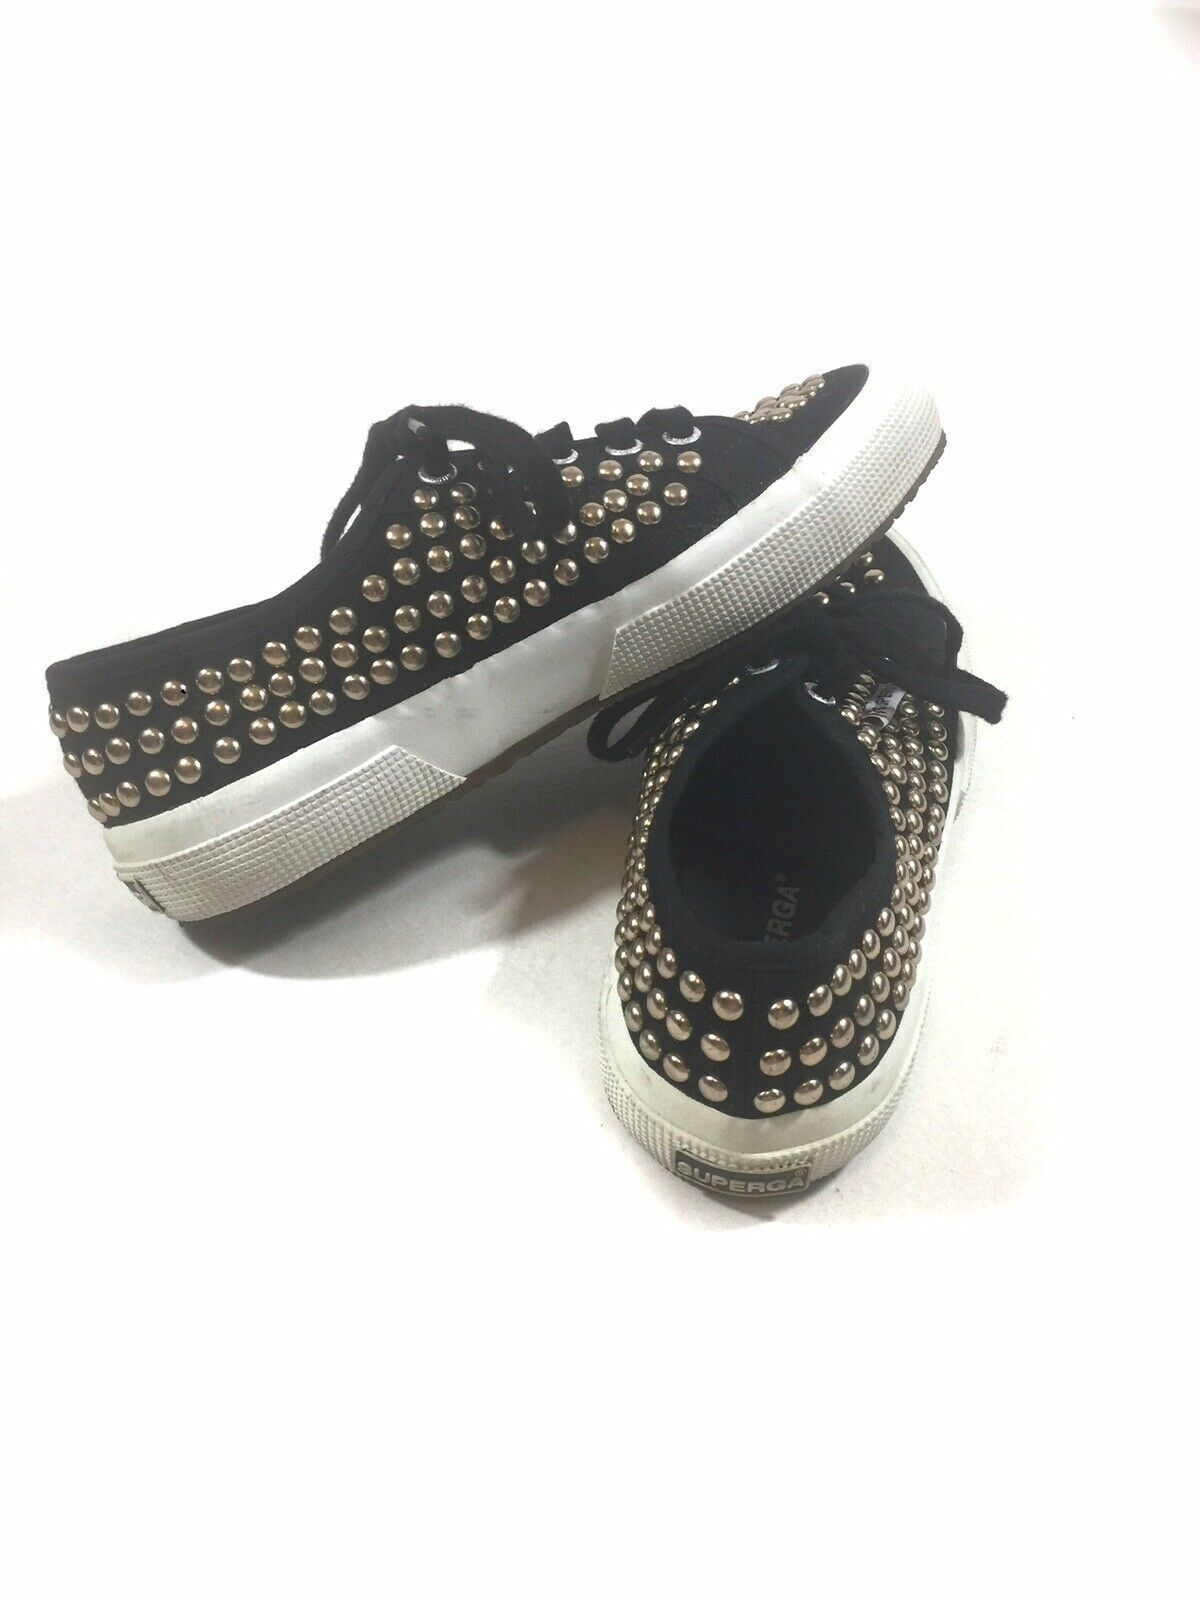 Superga Womens Size 37 (EU) 6.5 (US) Black Gold Studded Lace Up Sneakers